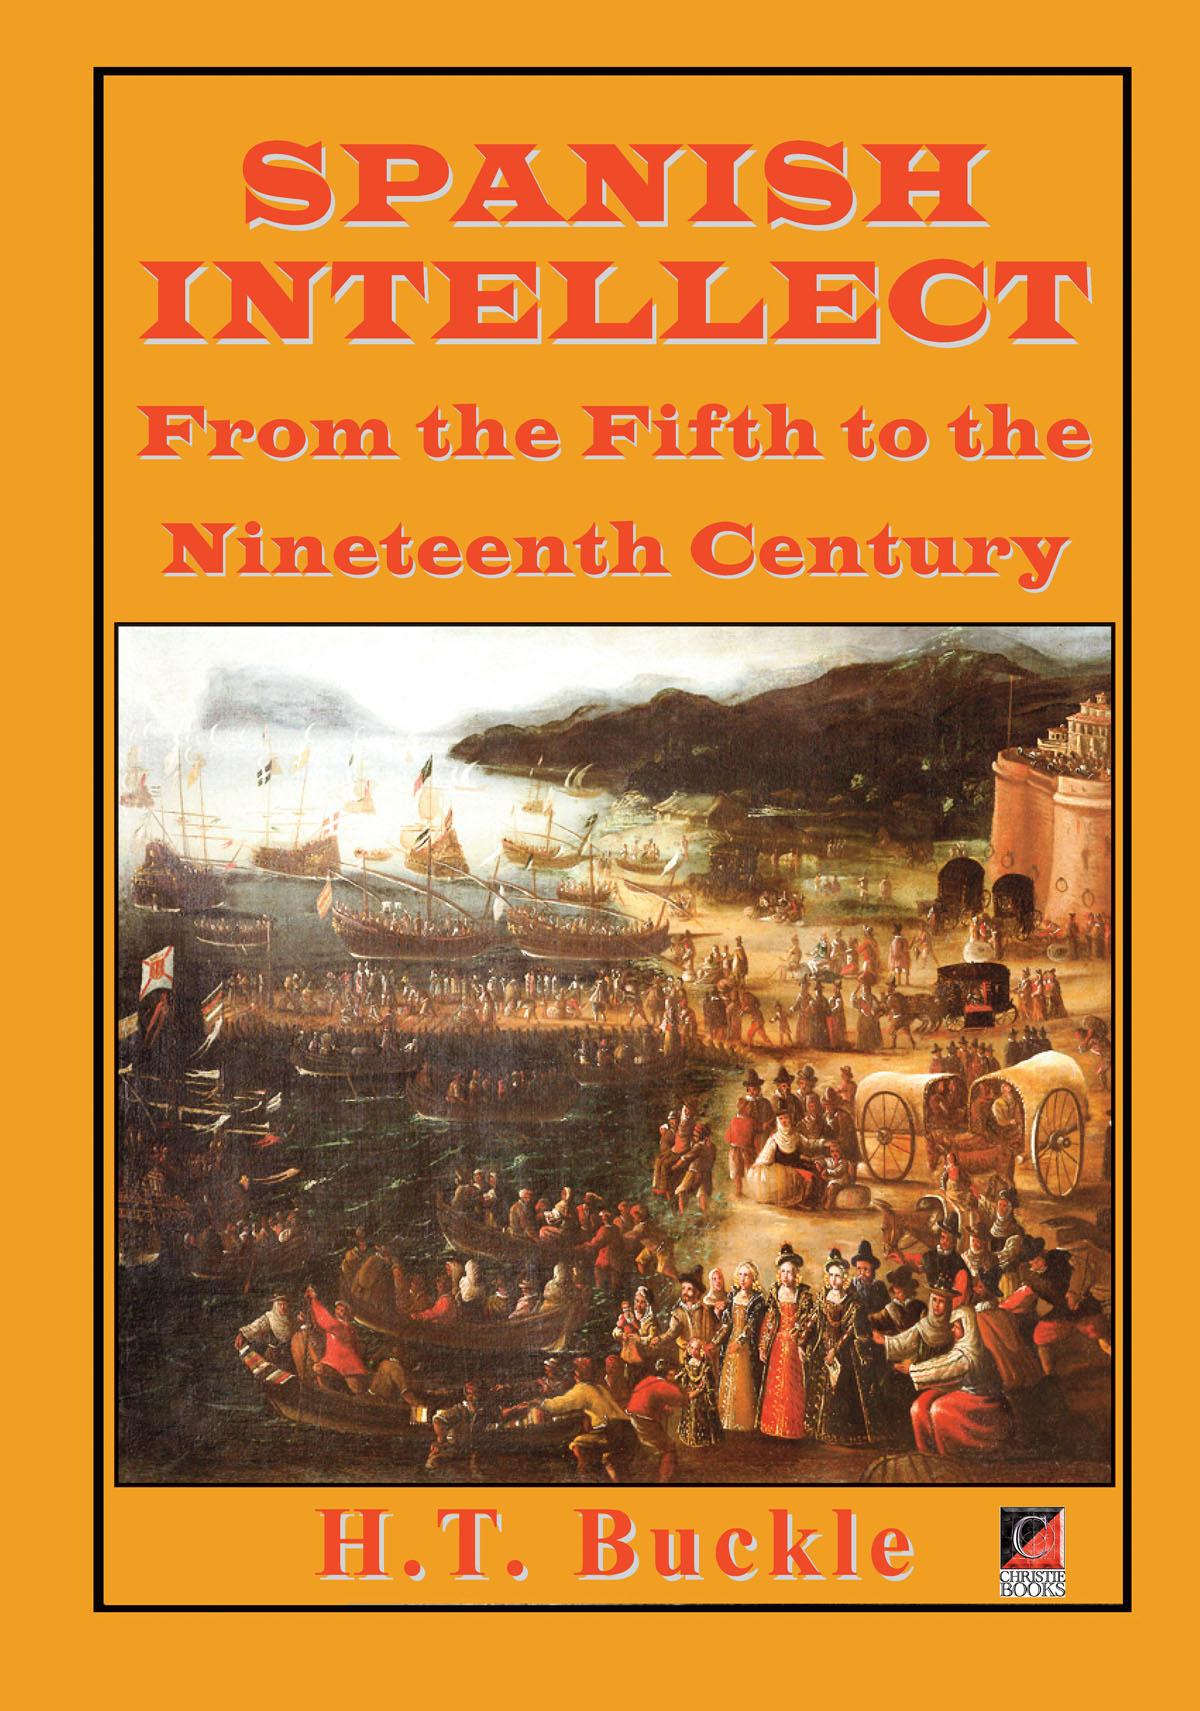 SPANISH INTELLECT From the Fifth to the Nineteenth Century